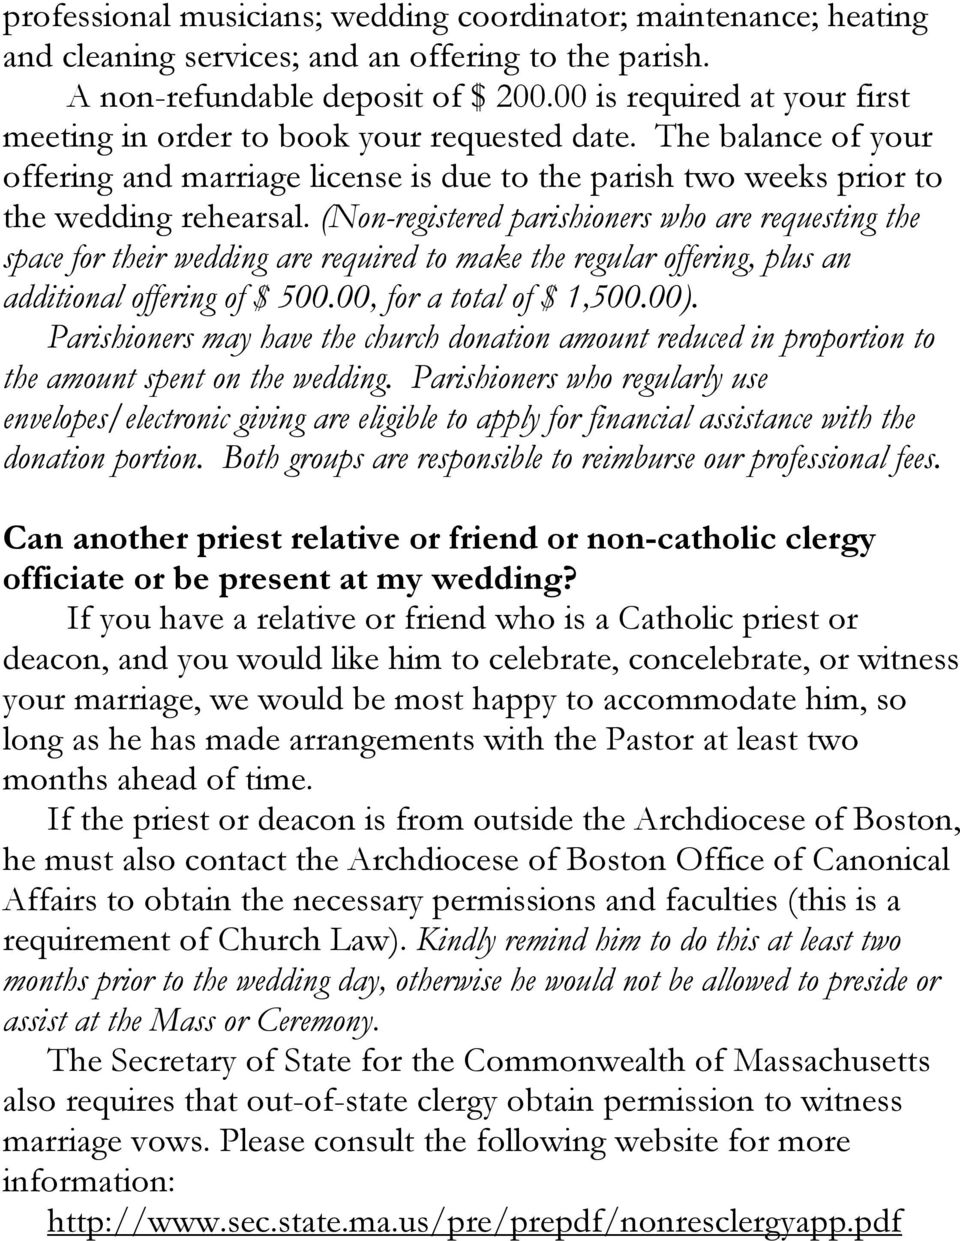 (Non-registered parishioners who are requesting the space for their wedding are required to make the regular offering, plus an additional offering of $ 500.00, for a total of $ 1,500.00).